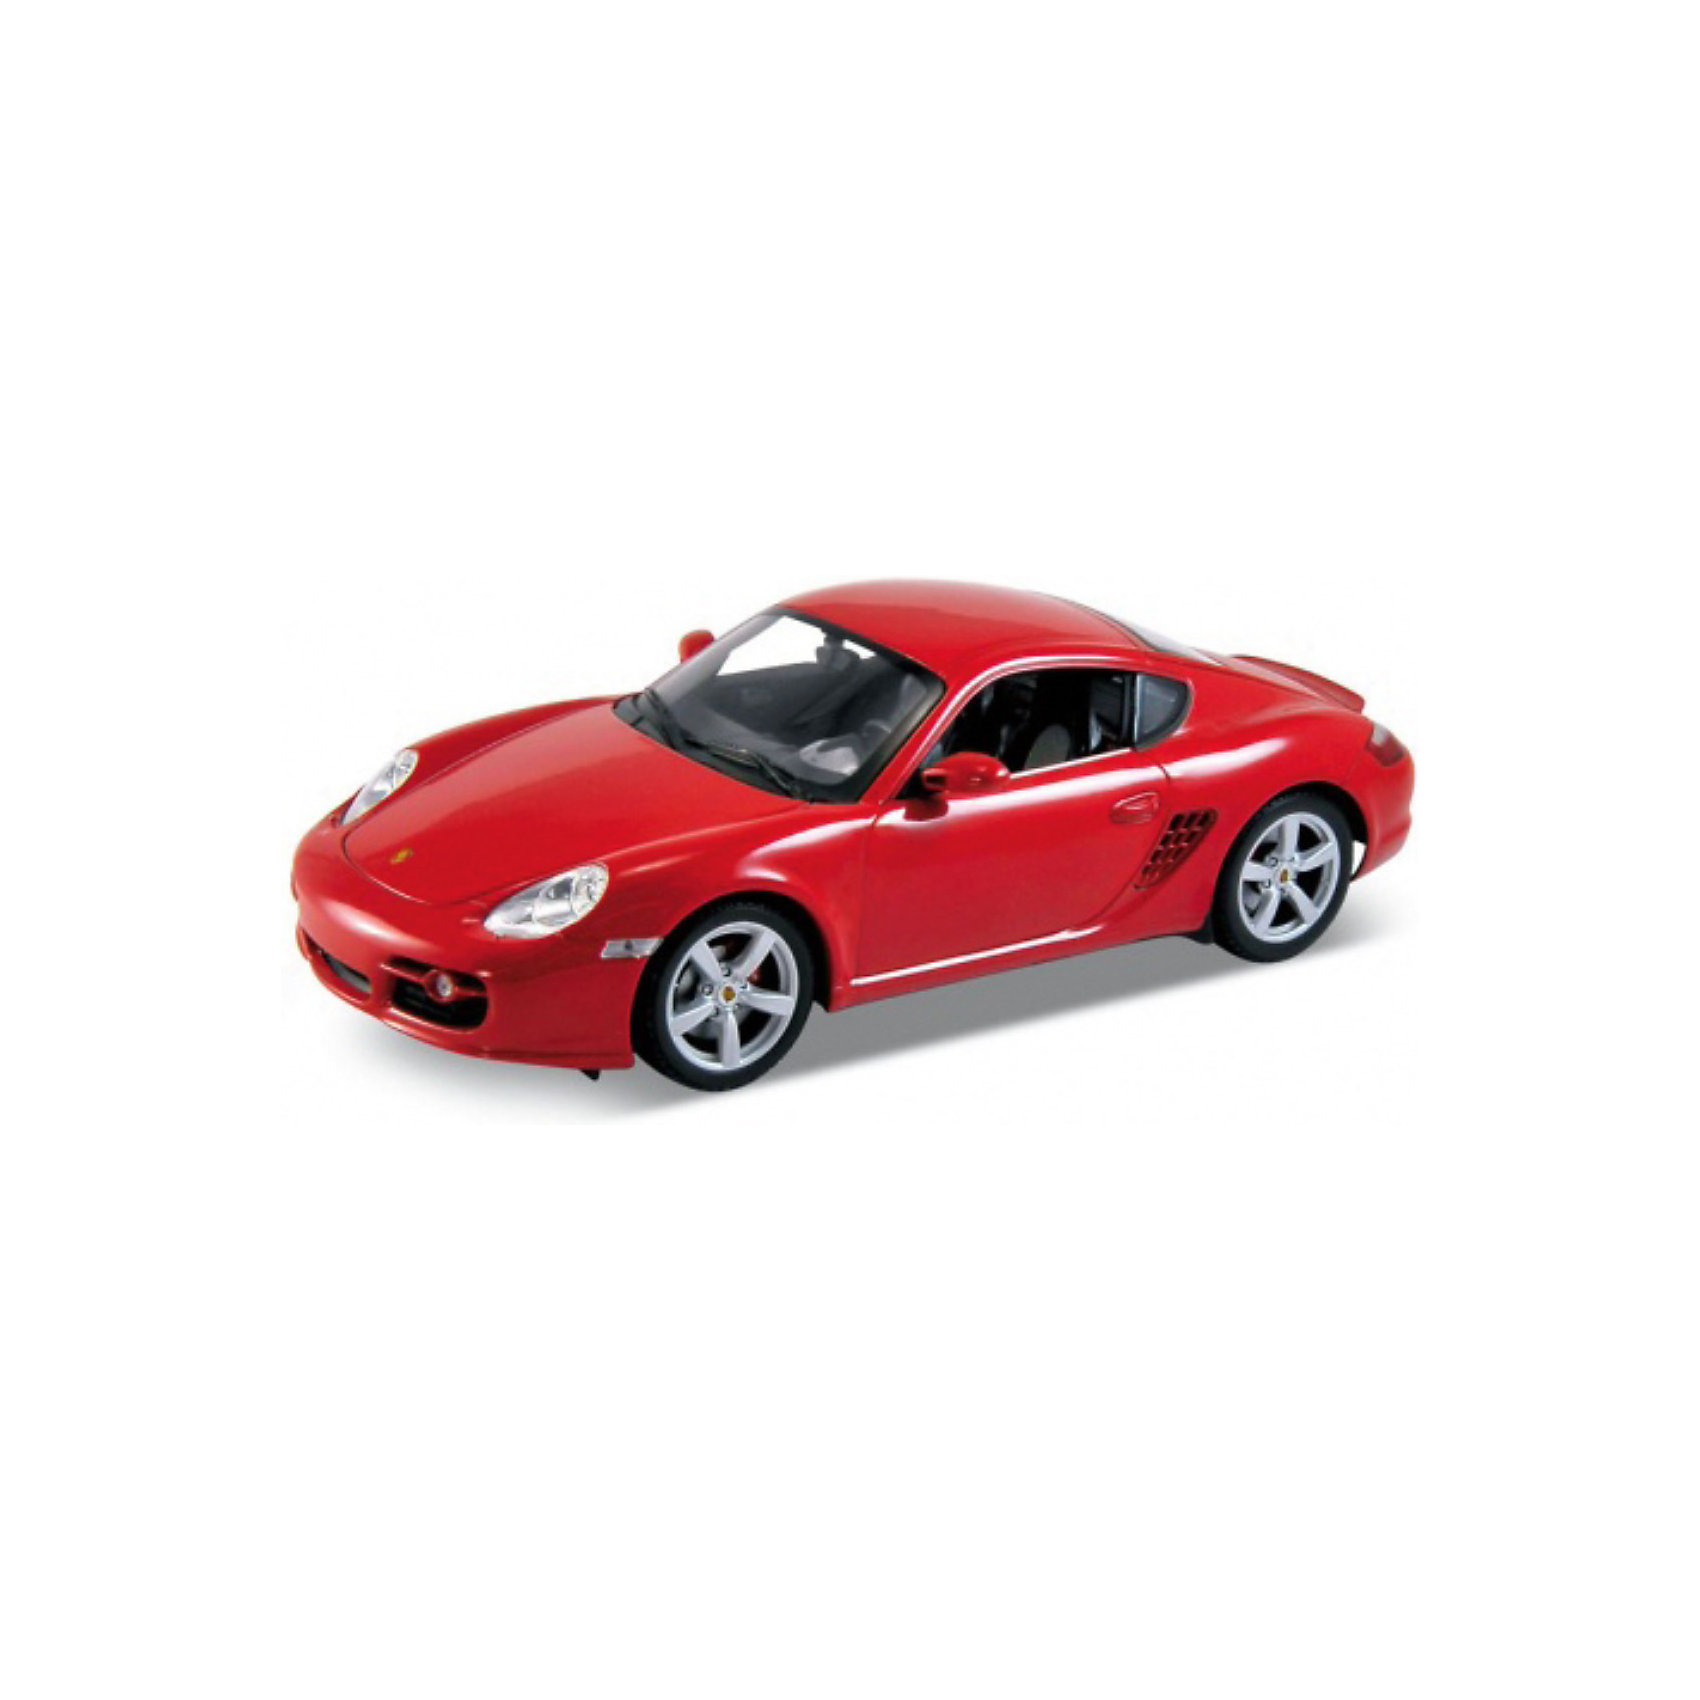 Welly Модель машины 1:18 Porsche Cayman S, Welly машинки s s космо page 1